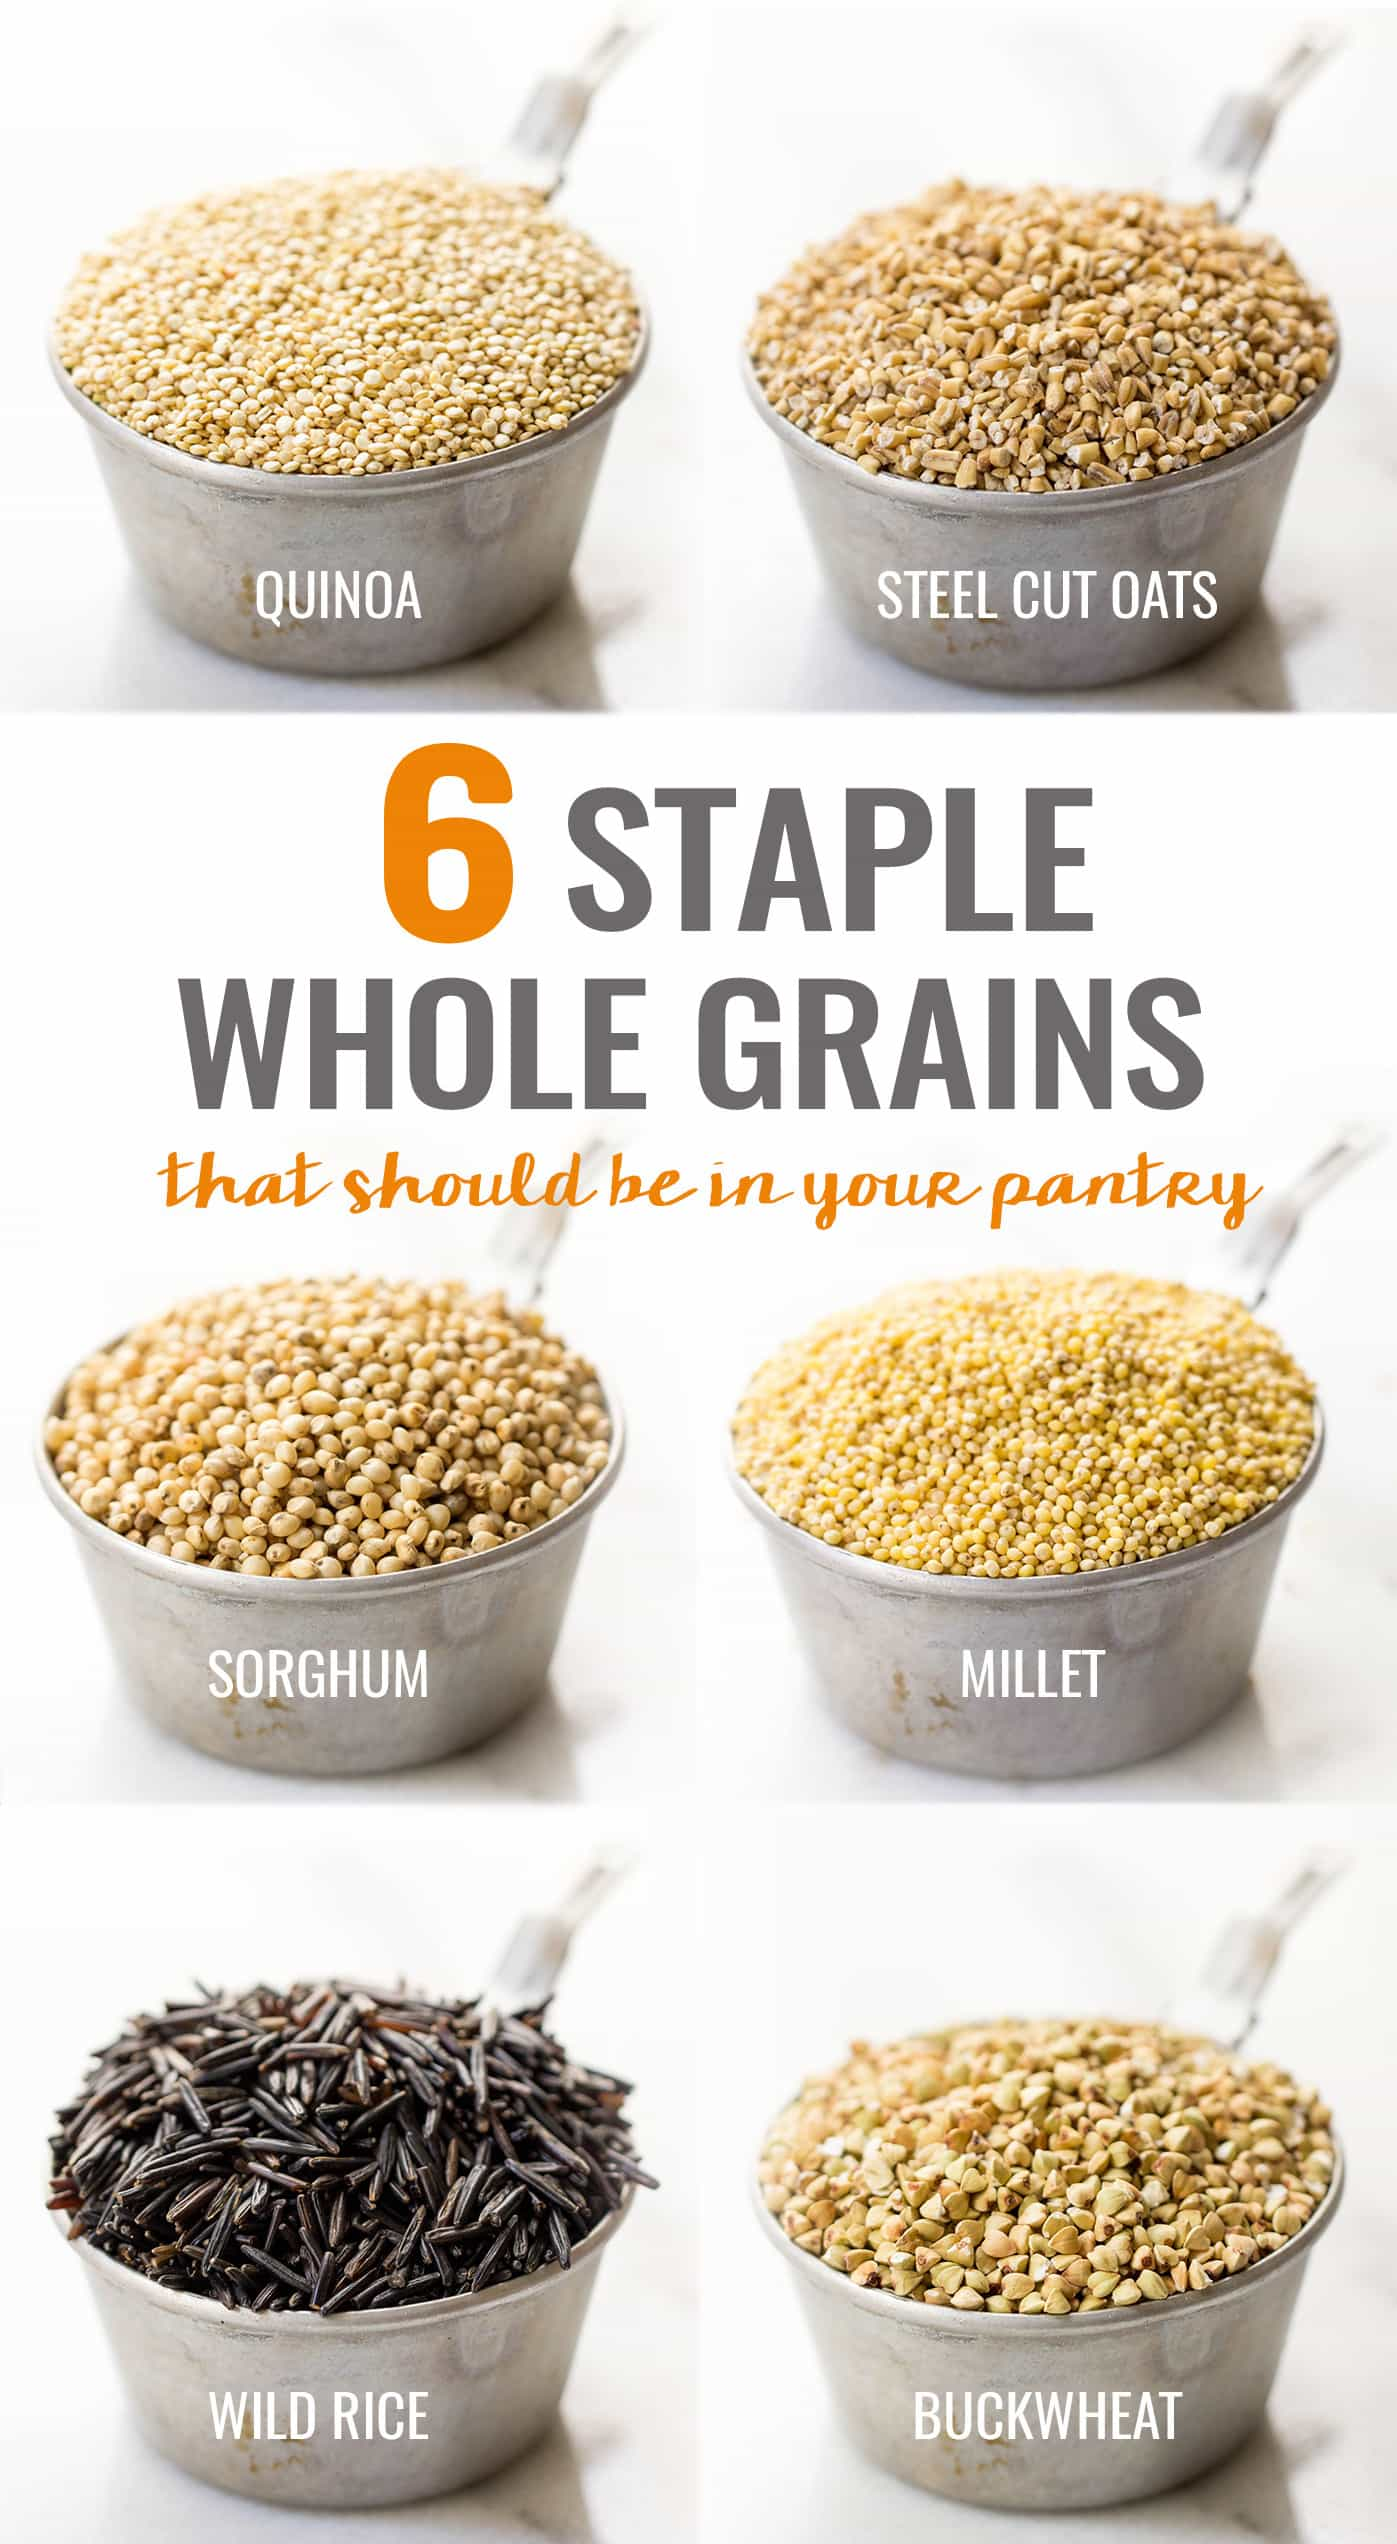 6 Staple Whole Grains that Should Be In Your Pantry...all high protein, high fiber and naturally gluten-free!